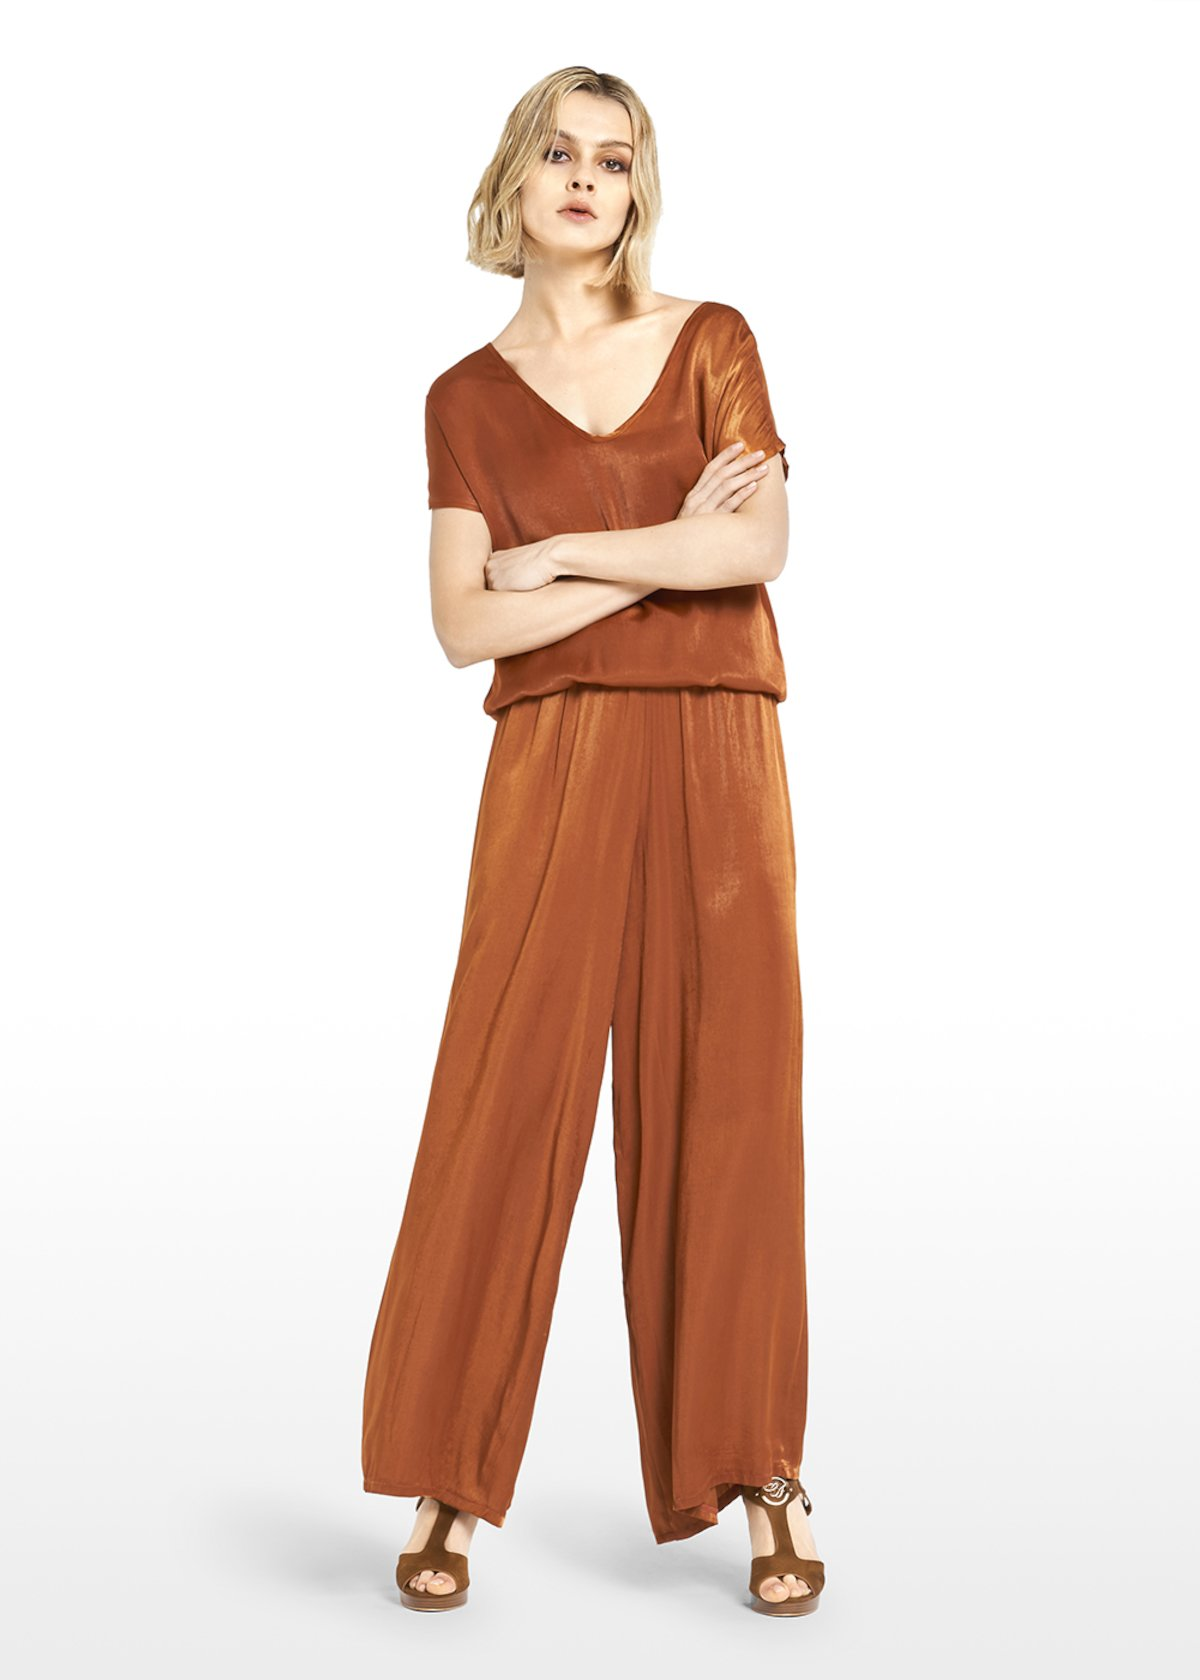 Pako trousers satin effect with elastic waist - Copper_Blue - Woman - Category image